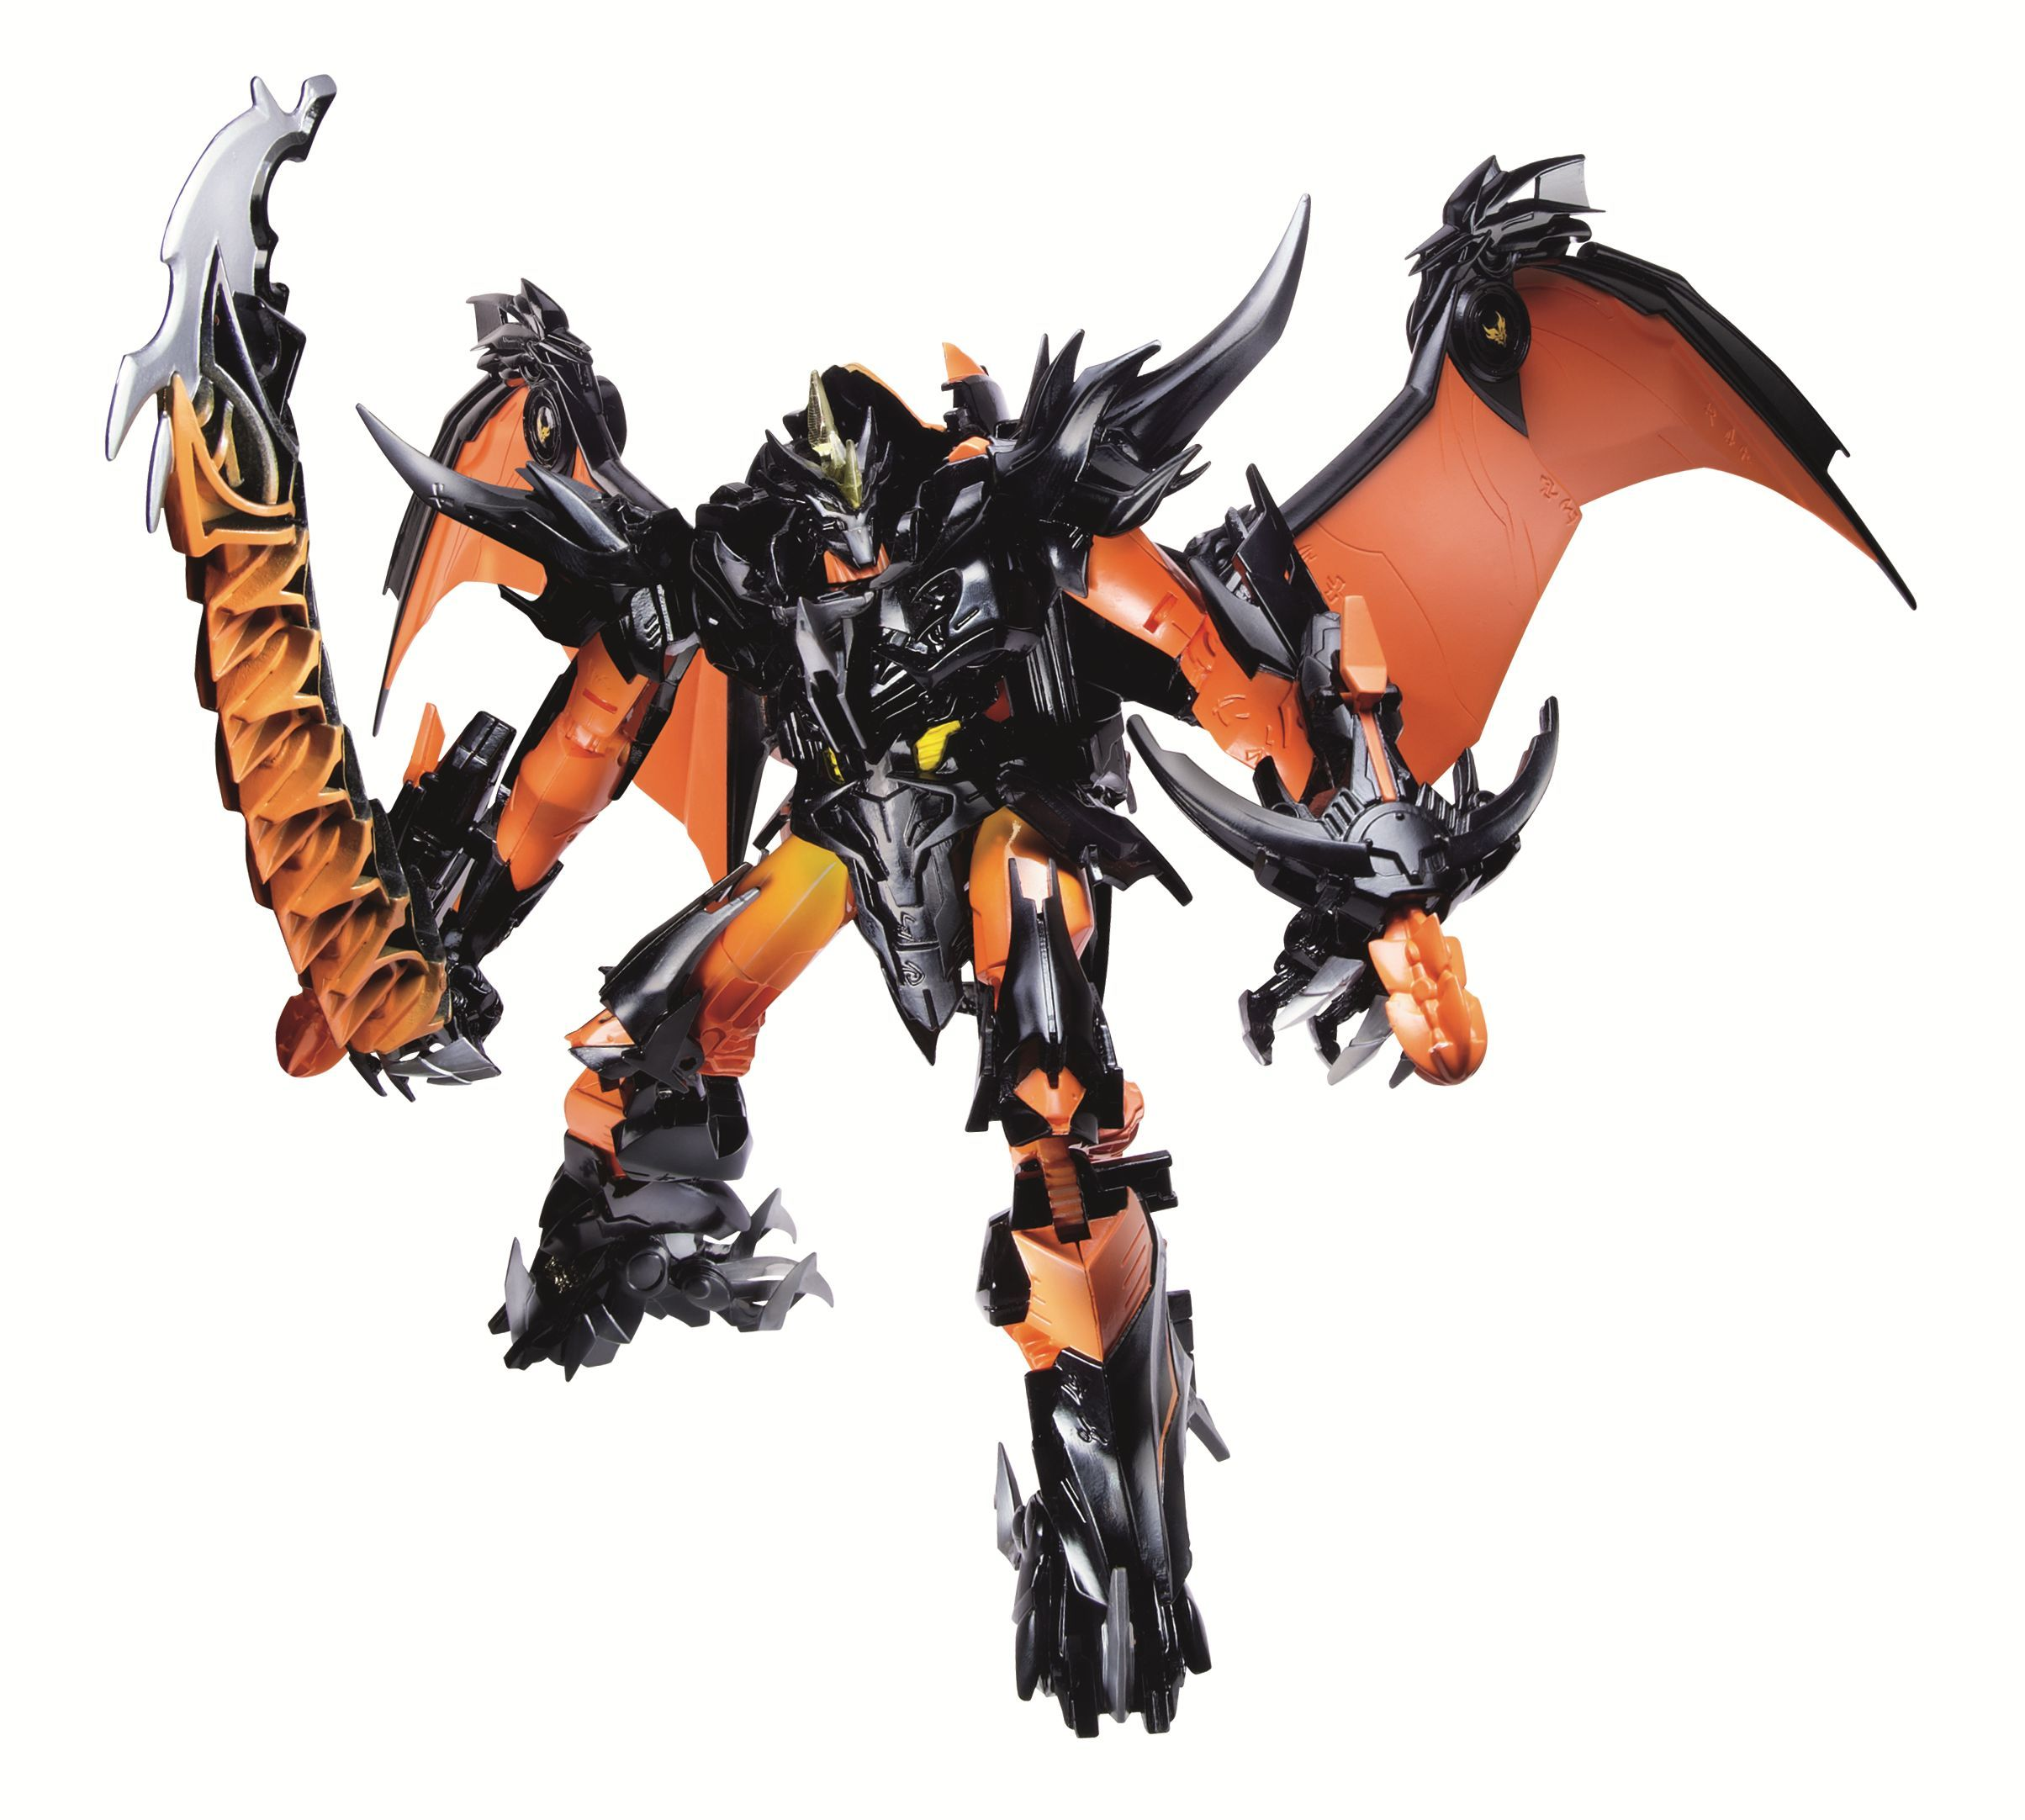 transformers prime meet predaking toy